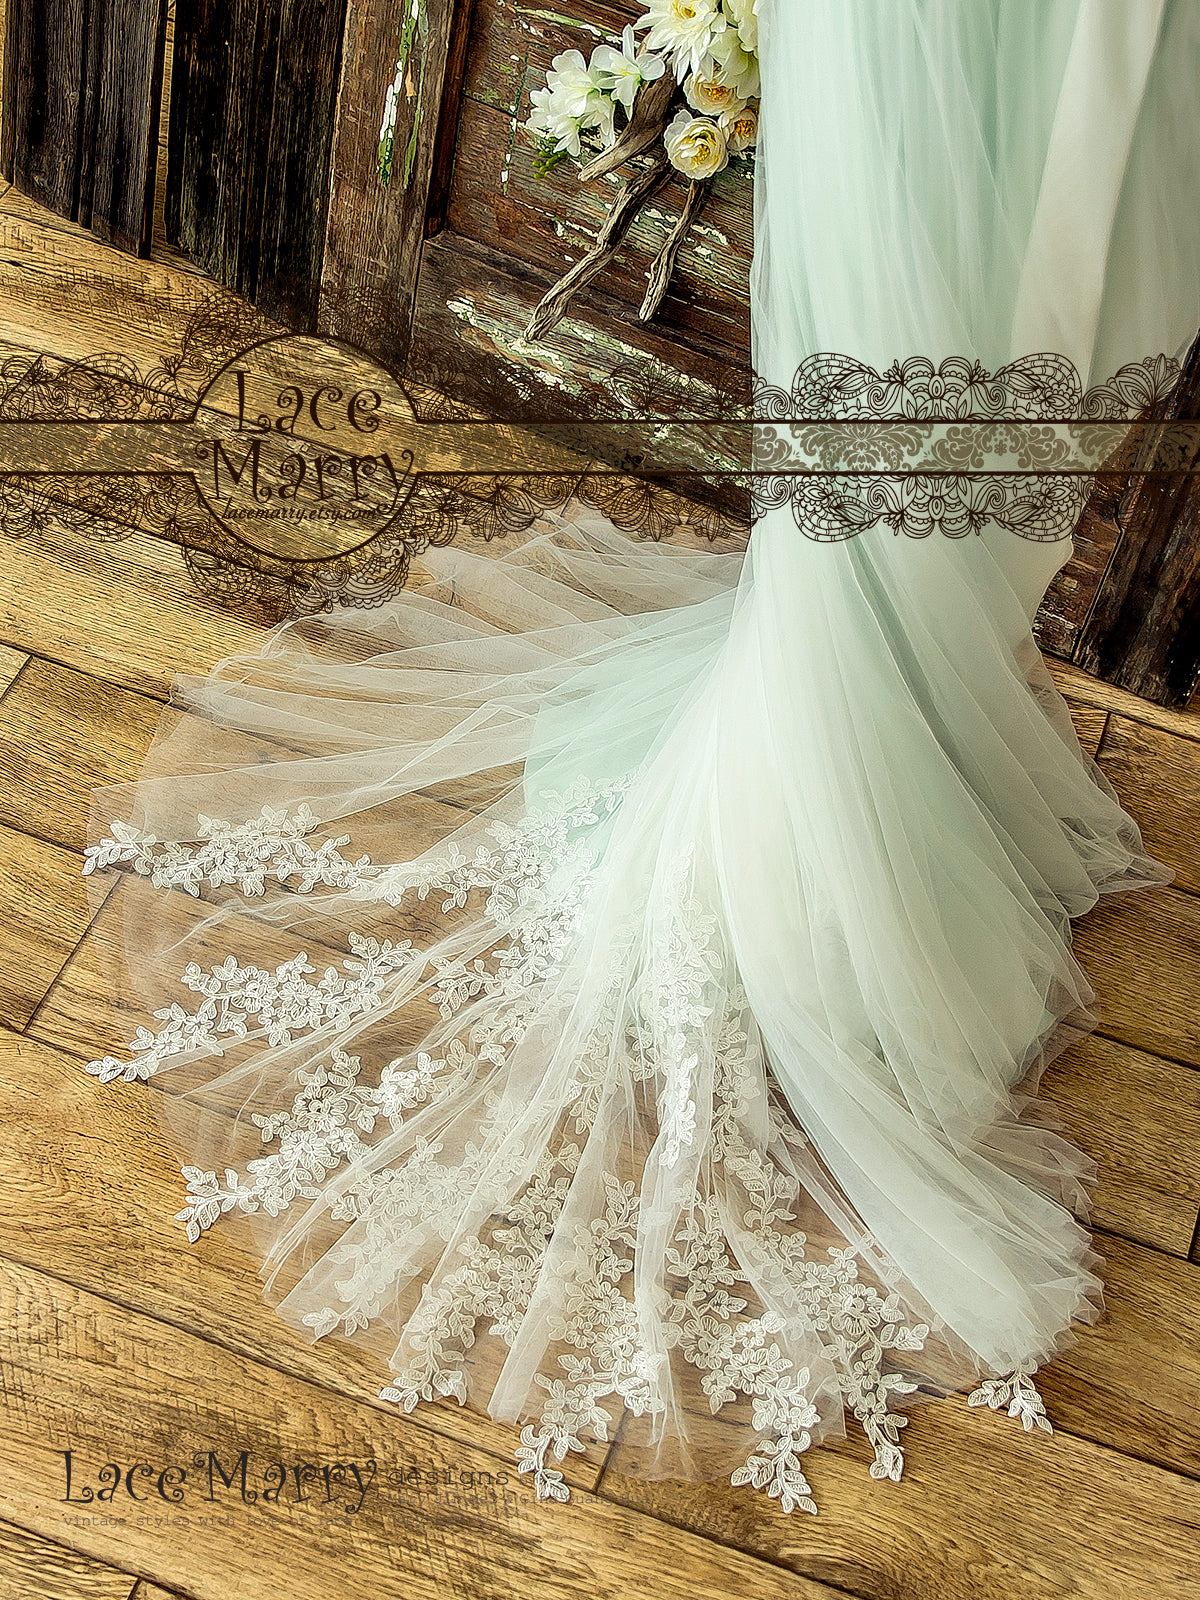 Soft Tulle Wedding Dress in Mint Color